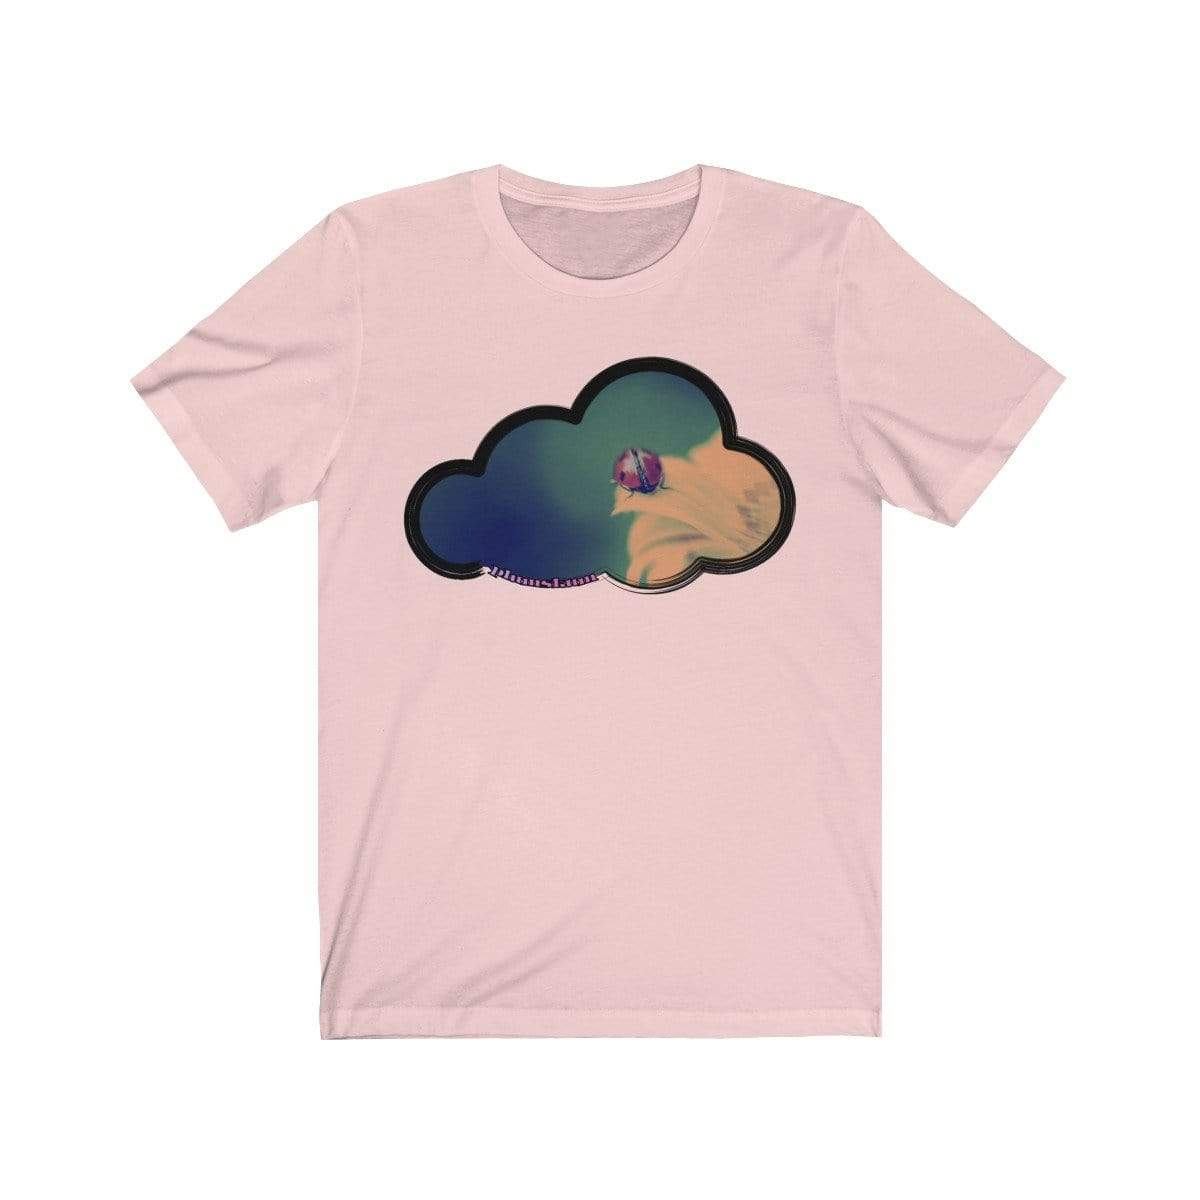 Printify T-Shirt Soft Pink / M Ladybug Art Clouds Tee